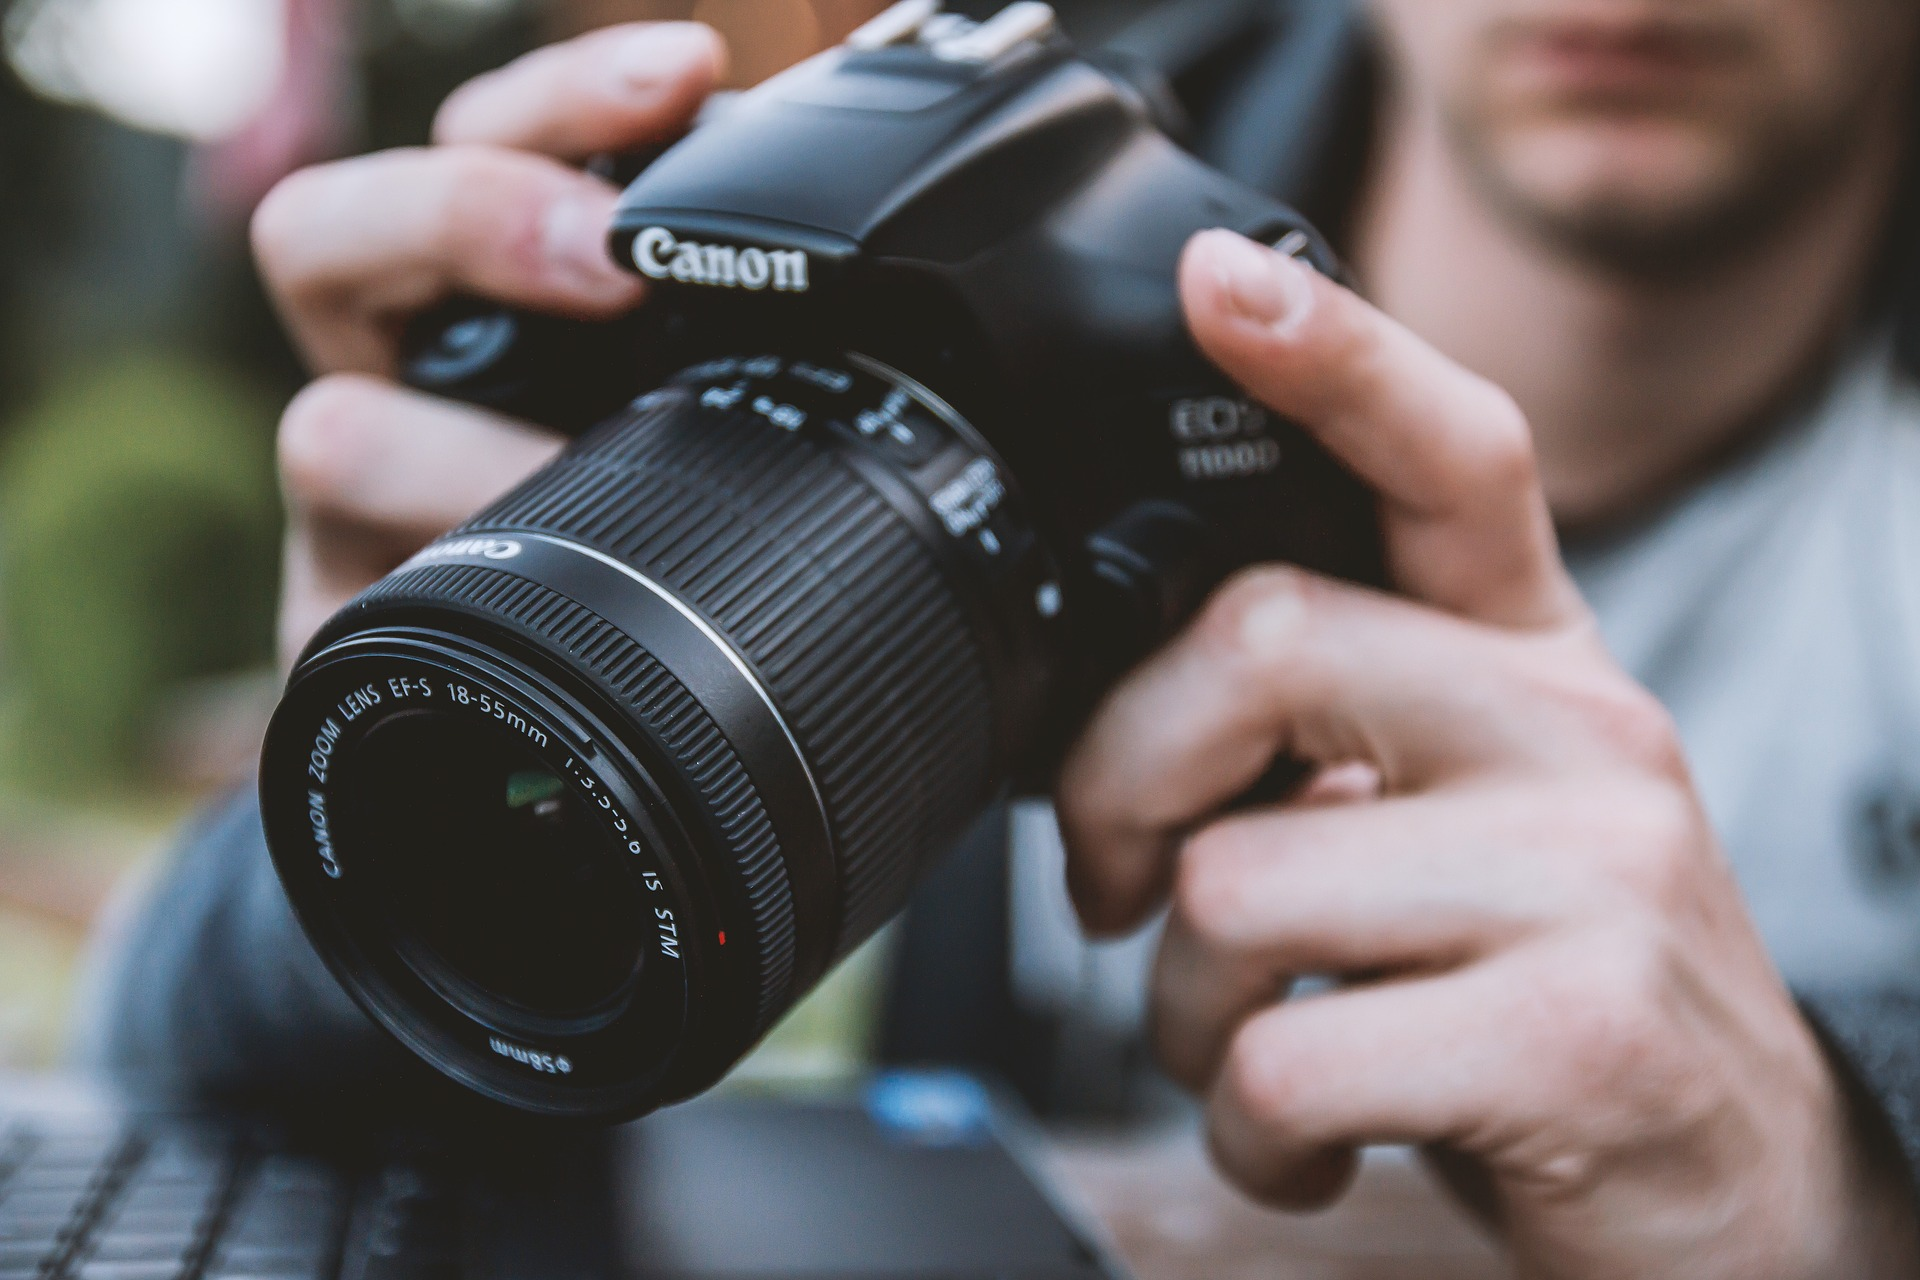 10 Best Vlogging Camera Under 200 For 2019 – Buyer's Guide